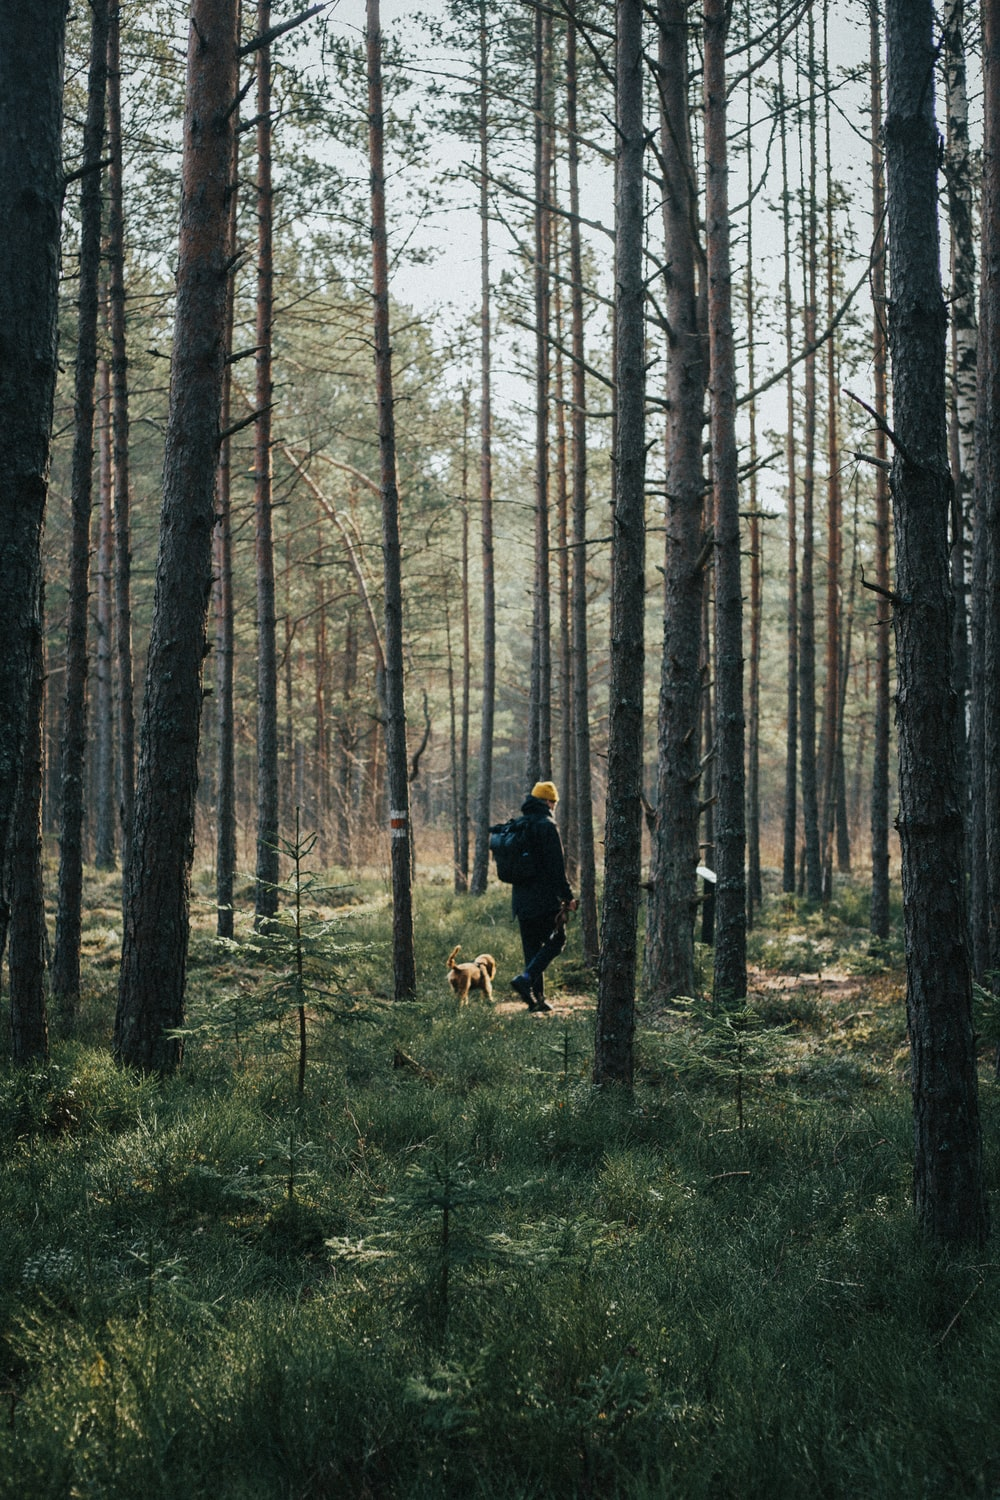 man in black jacket and brown dog walking on forest during daytime